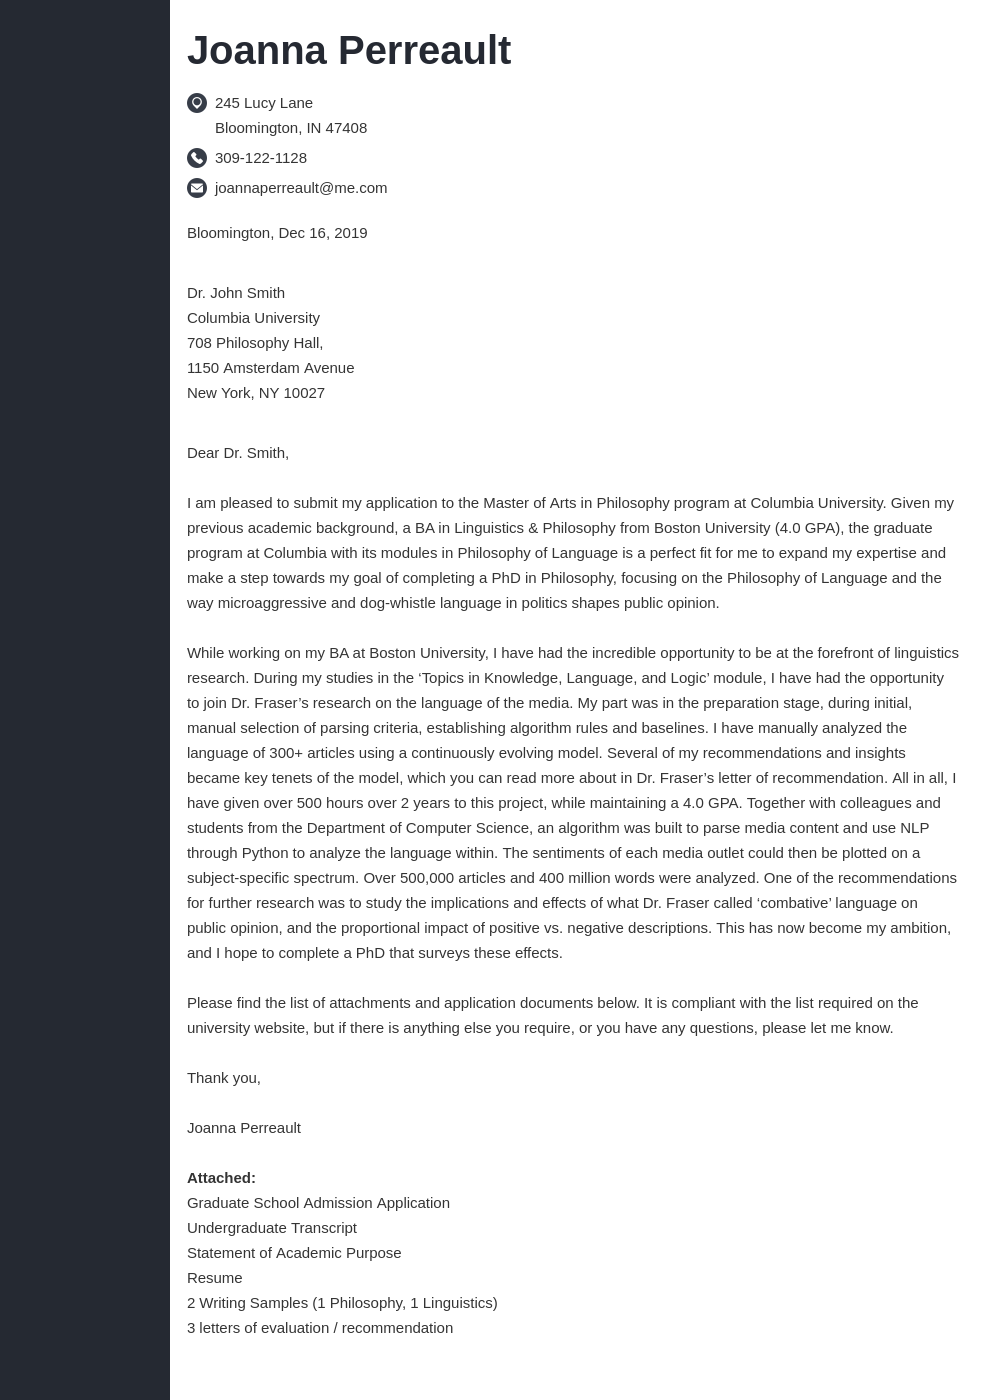 cover letter examples graduate school template concept uk